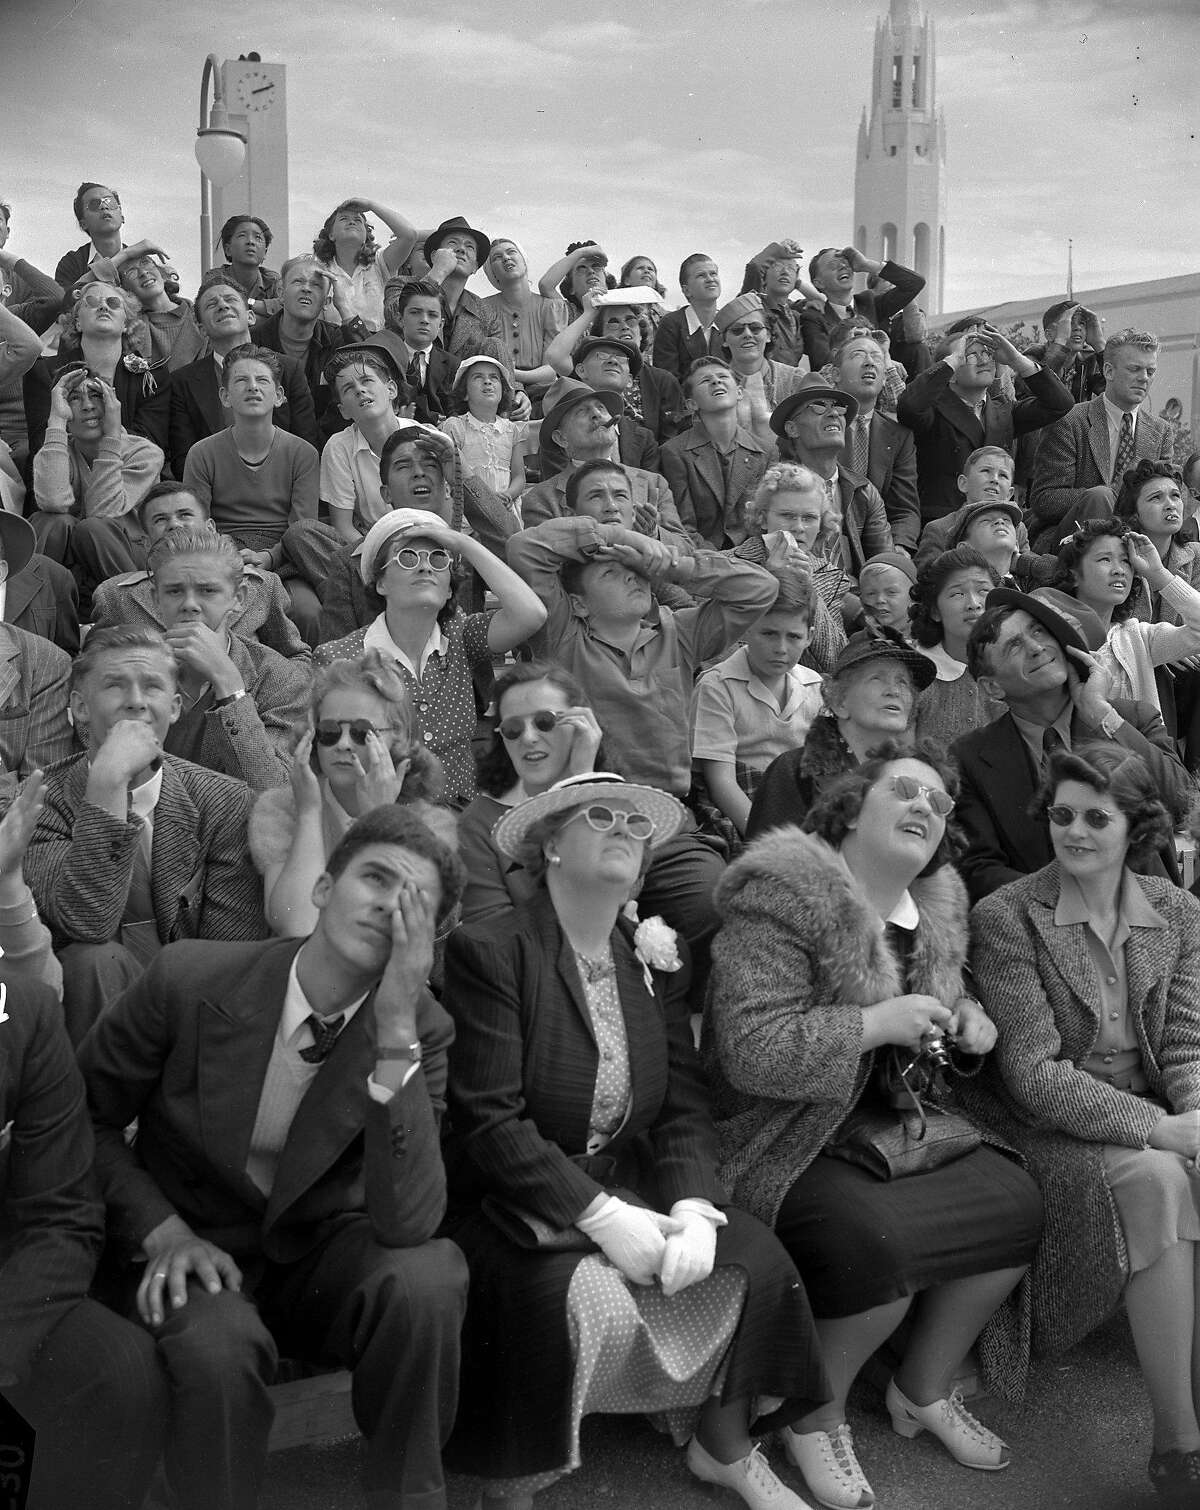 A view of the crowd at the Golden Gate International Exposition on Treasure Island in 1940.